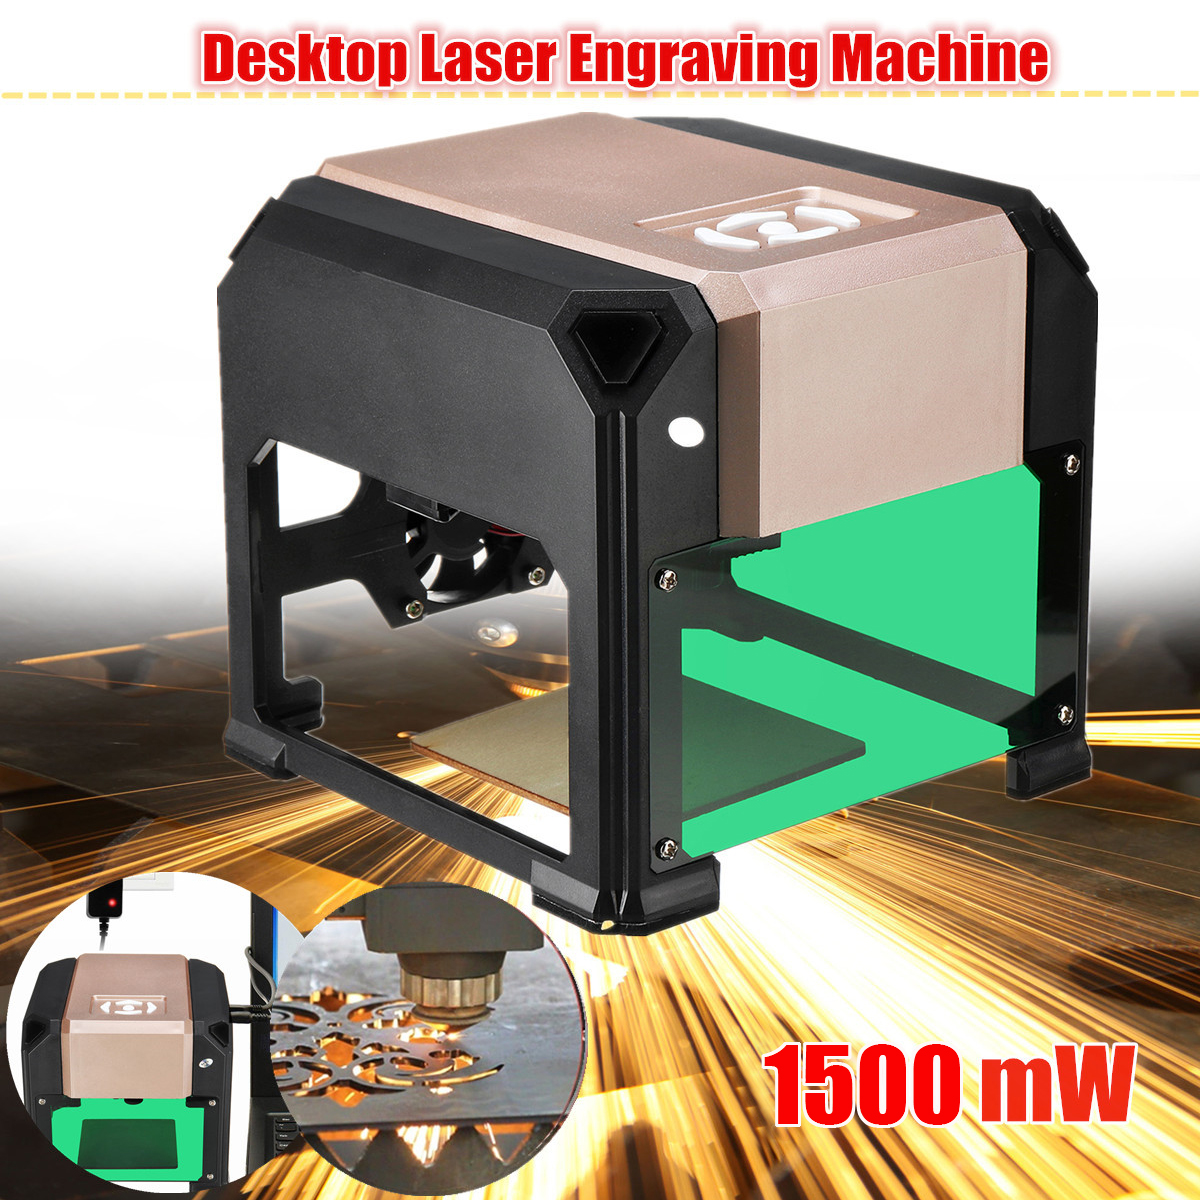 1500mW Golden Desktop Laser Engraving Machine Logo Marking Engraver Wood Router Laser Carving Machine Woodworking Machinery 10w laser engraver metal laser marking machine cnc router with 140 200mm engraving area for stainless steel aluminum marking